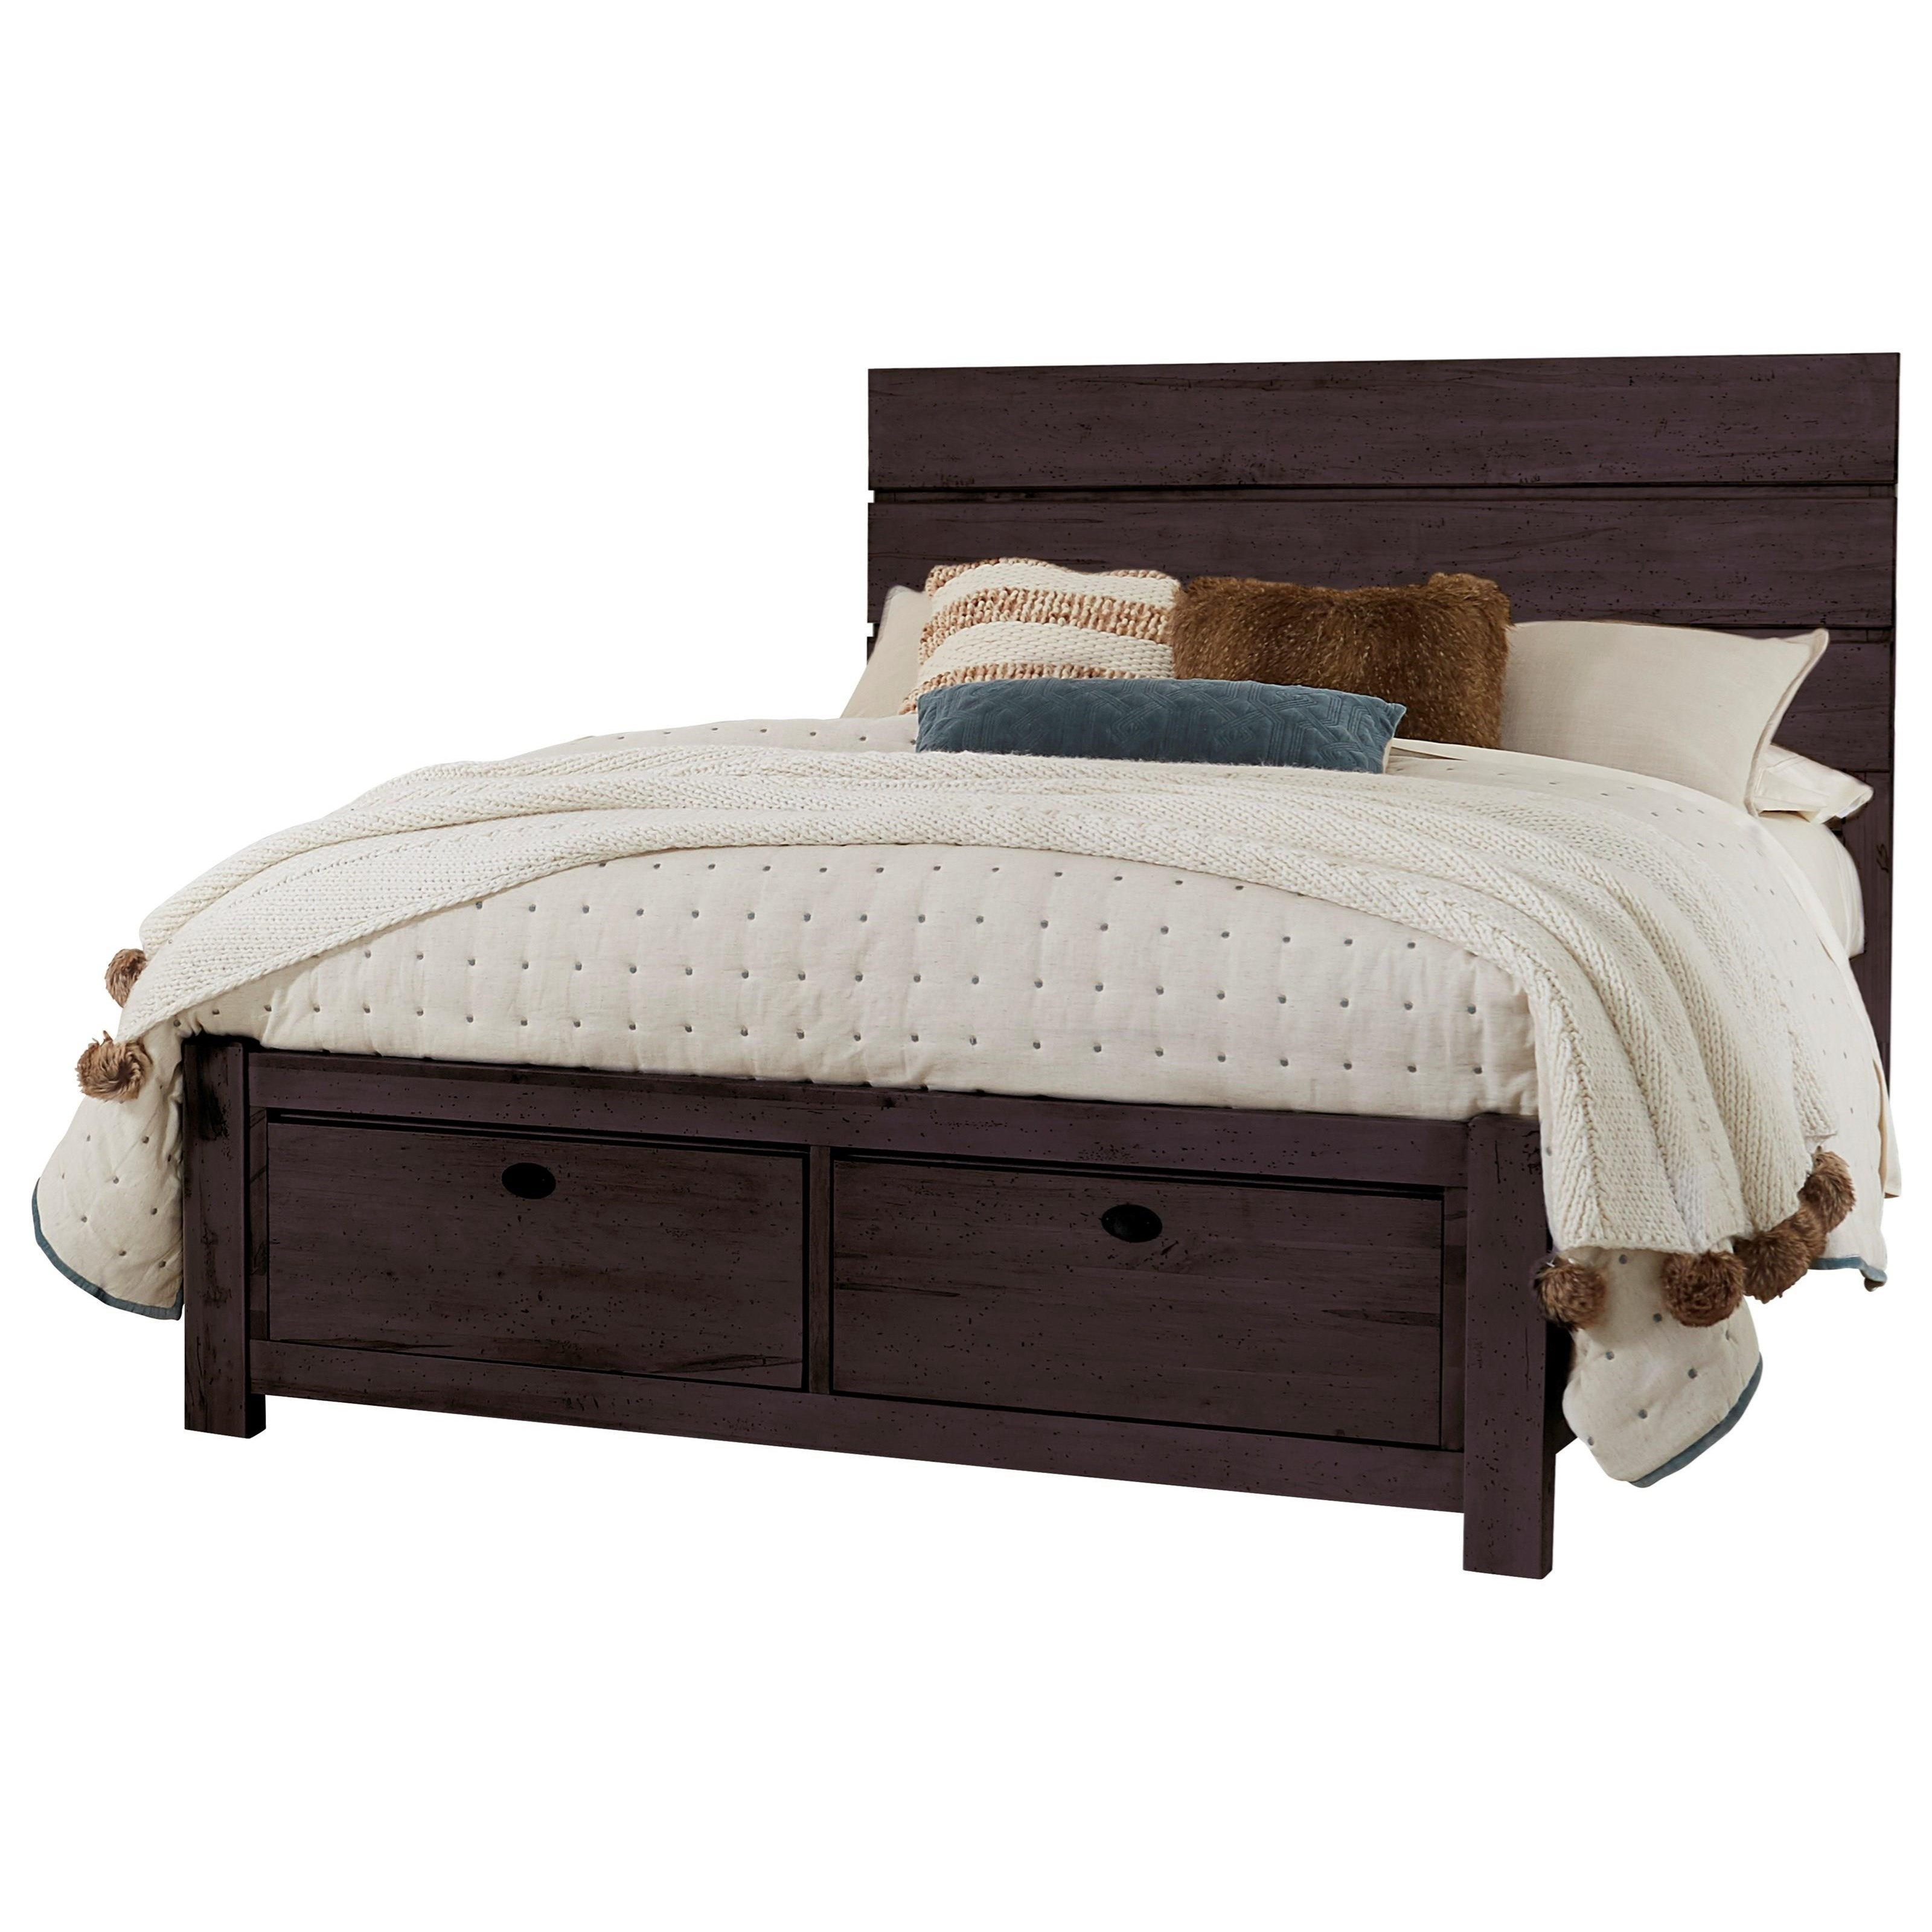 Touche King Storage Bed by Centennial Solids at Rooms and Rest